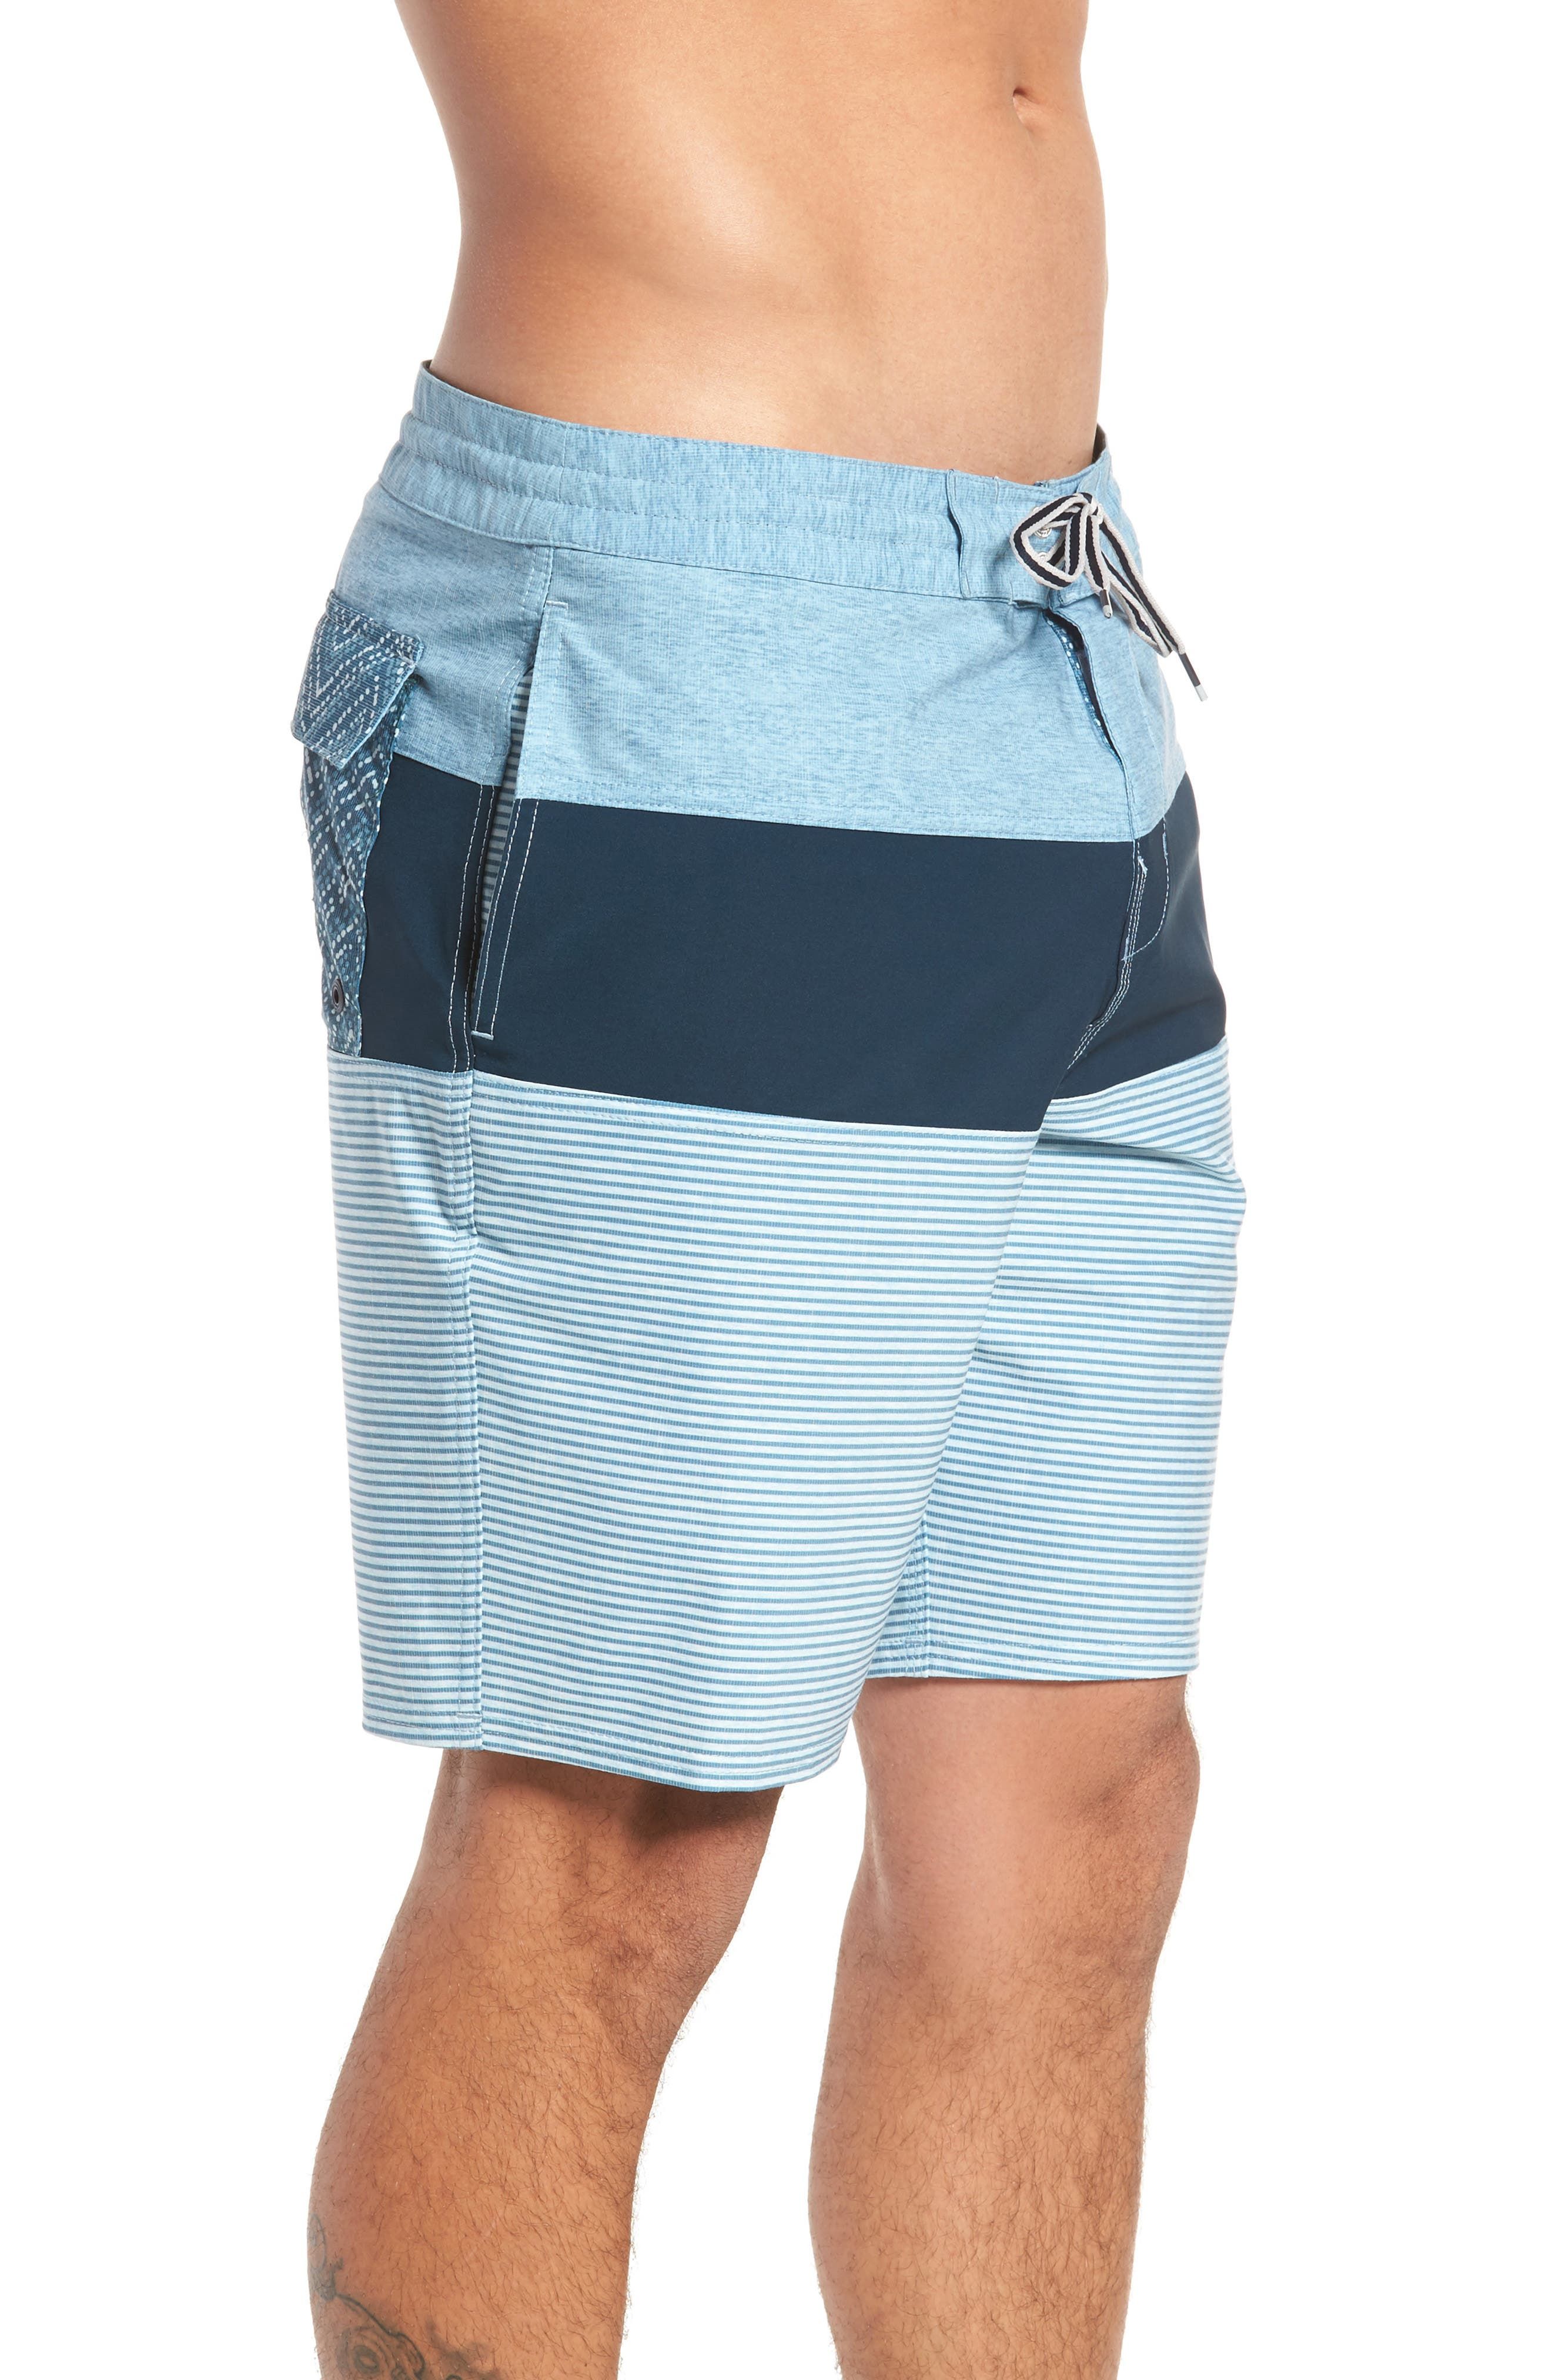 Tribong LT Board Shorts,                             Alternate thumbnail 8, color,